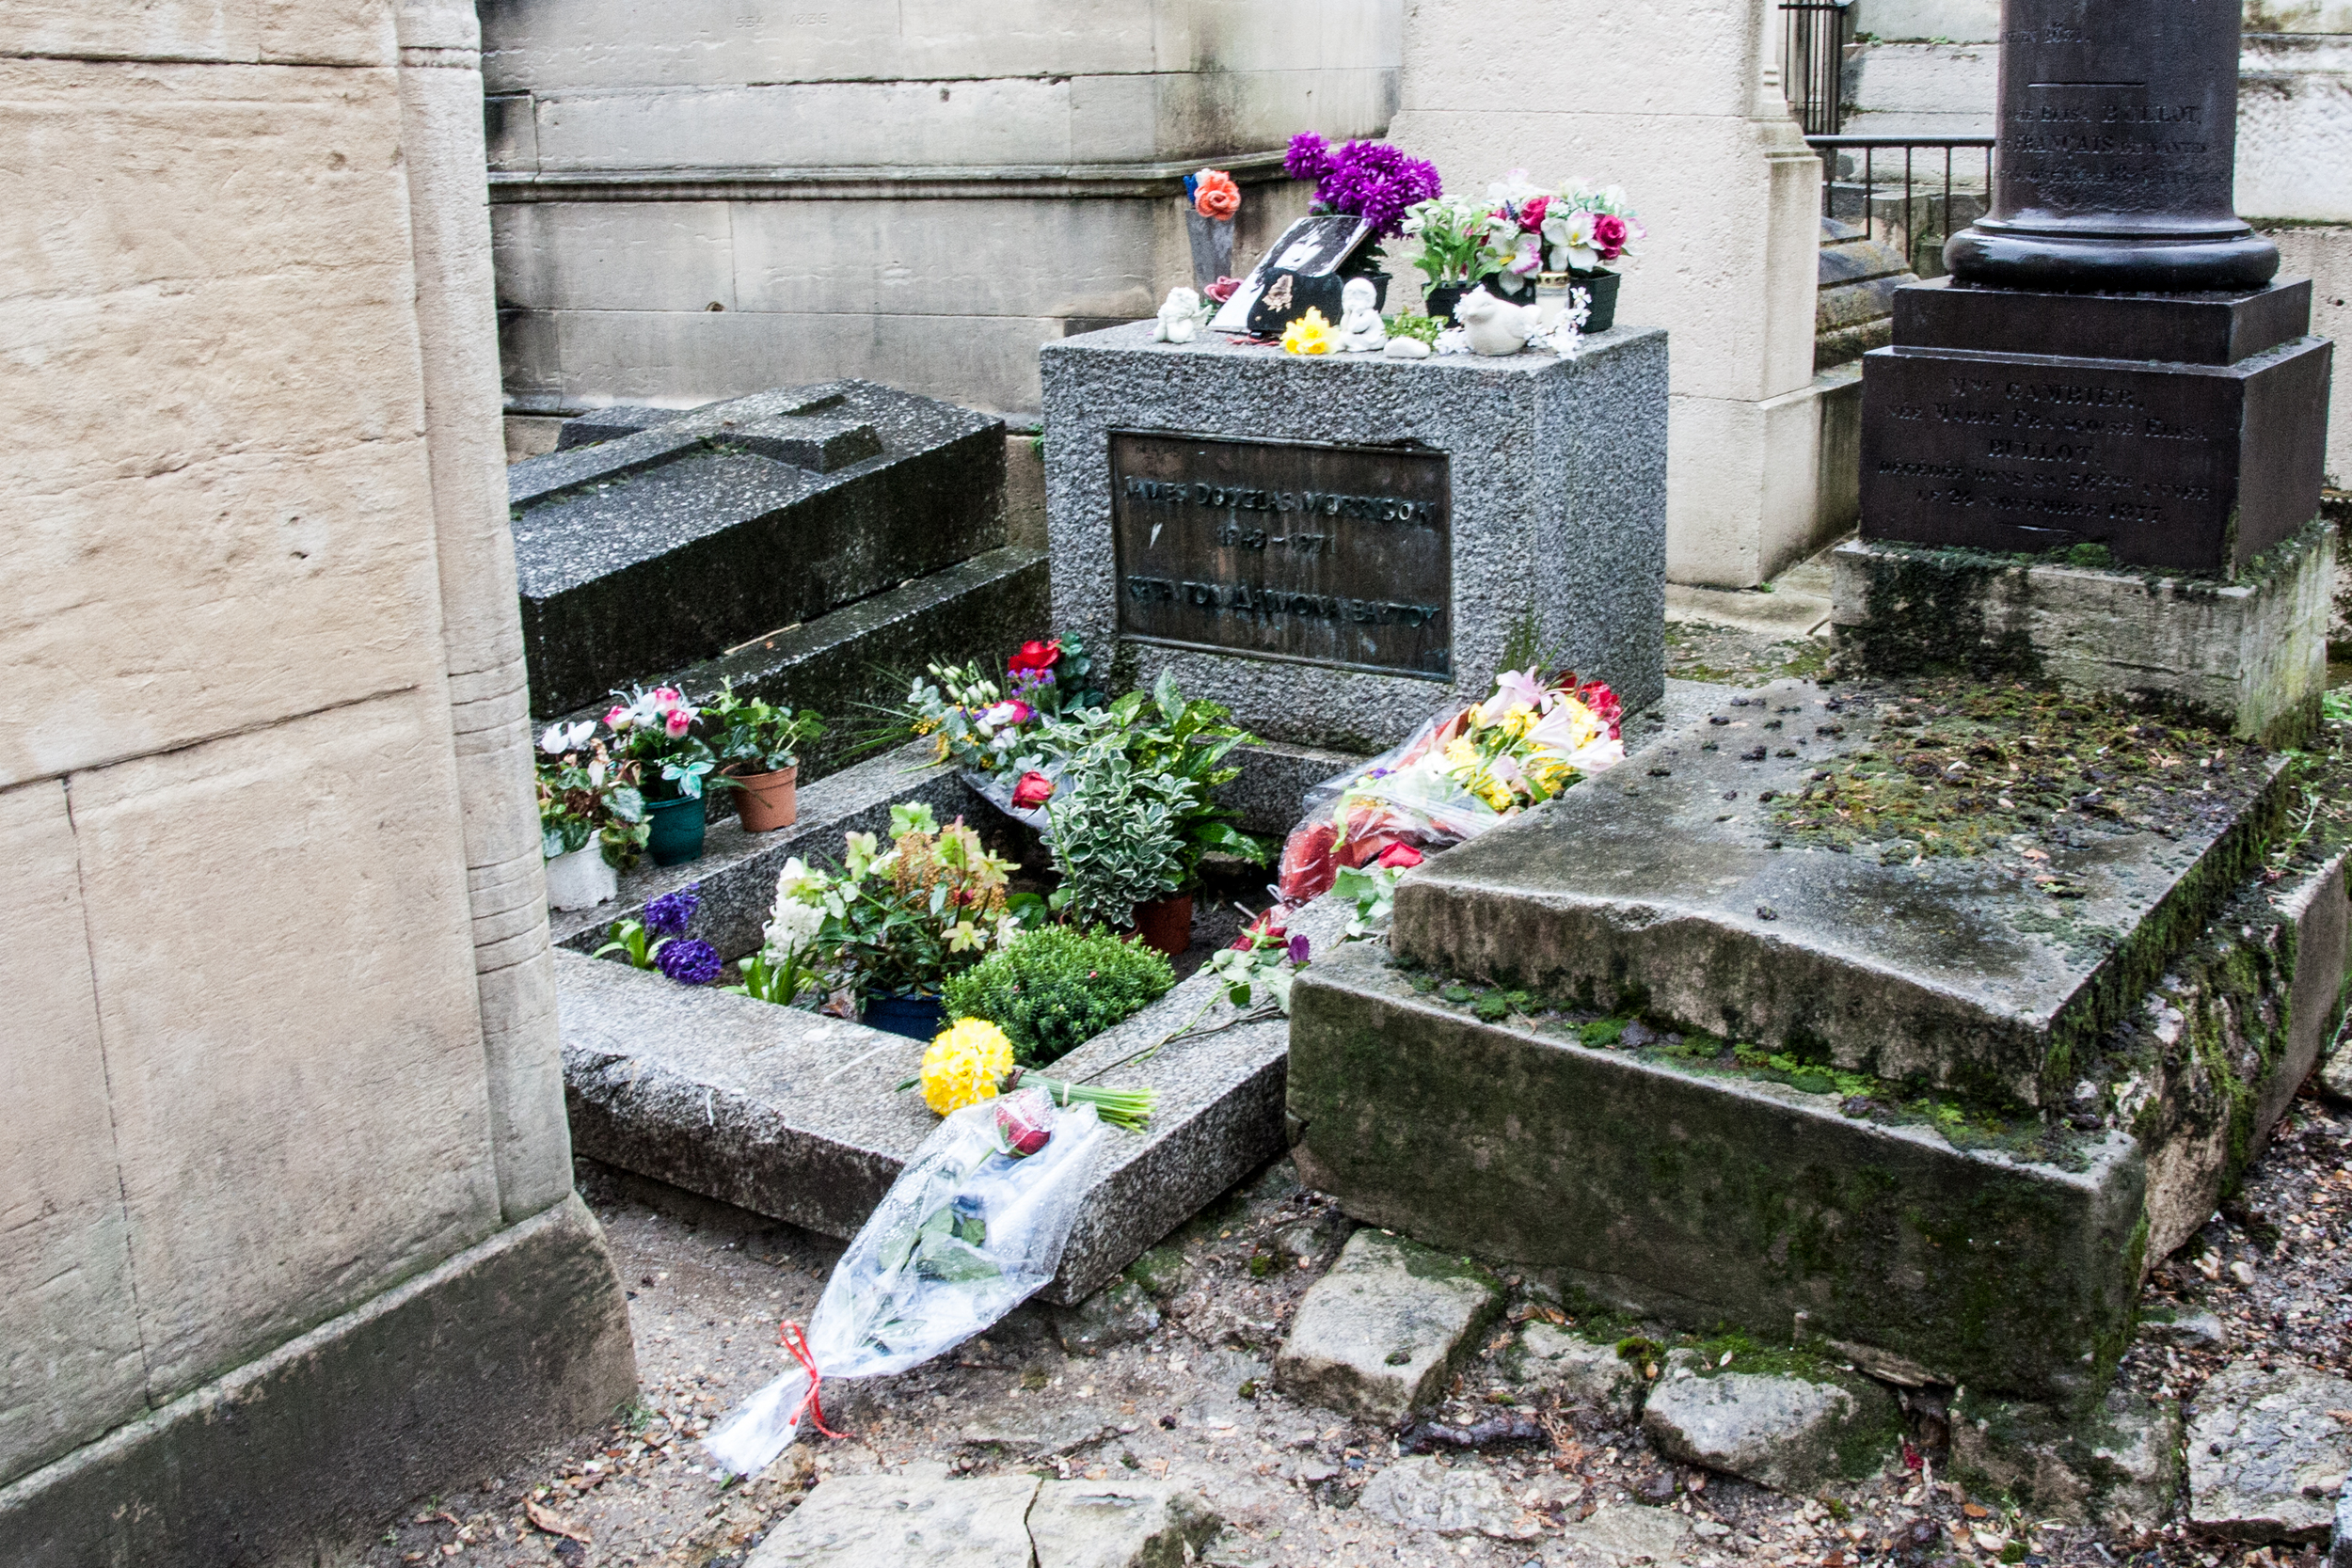 Jim Morrison's grave, protected by chainlink fence and security guard.